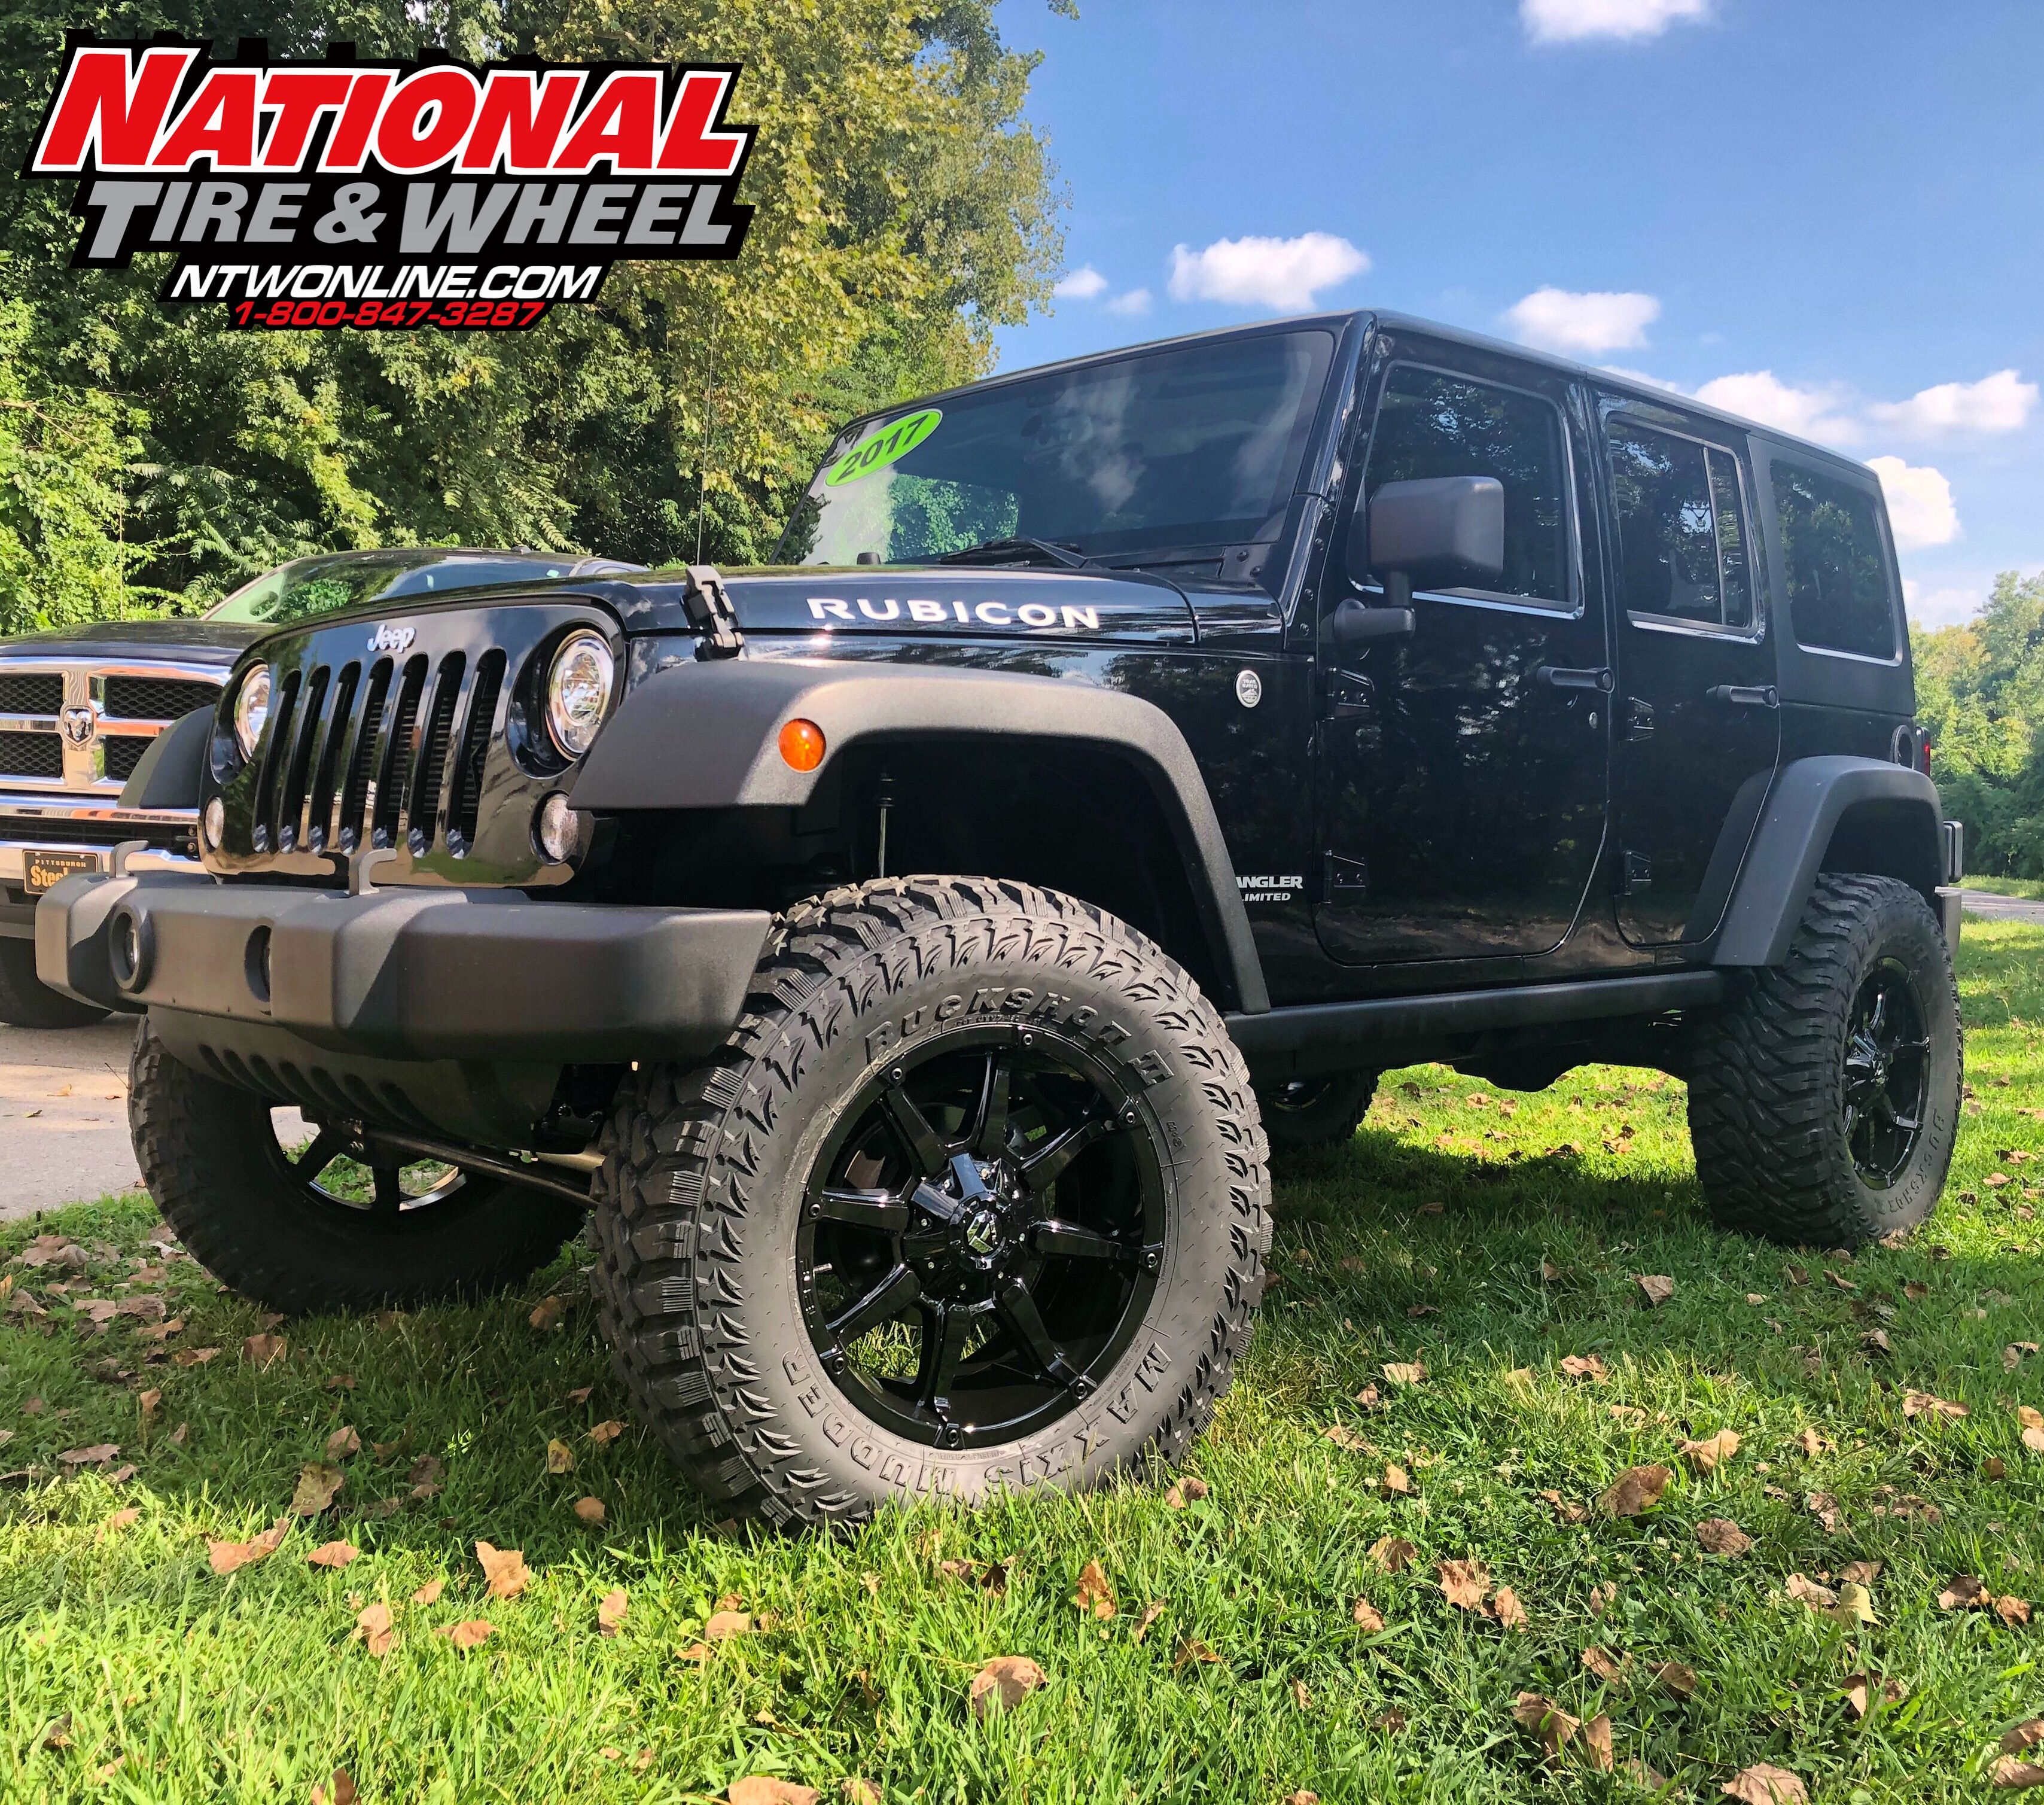 Off Road Tires Wheels Accessories National Tire Wheel Off